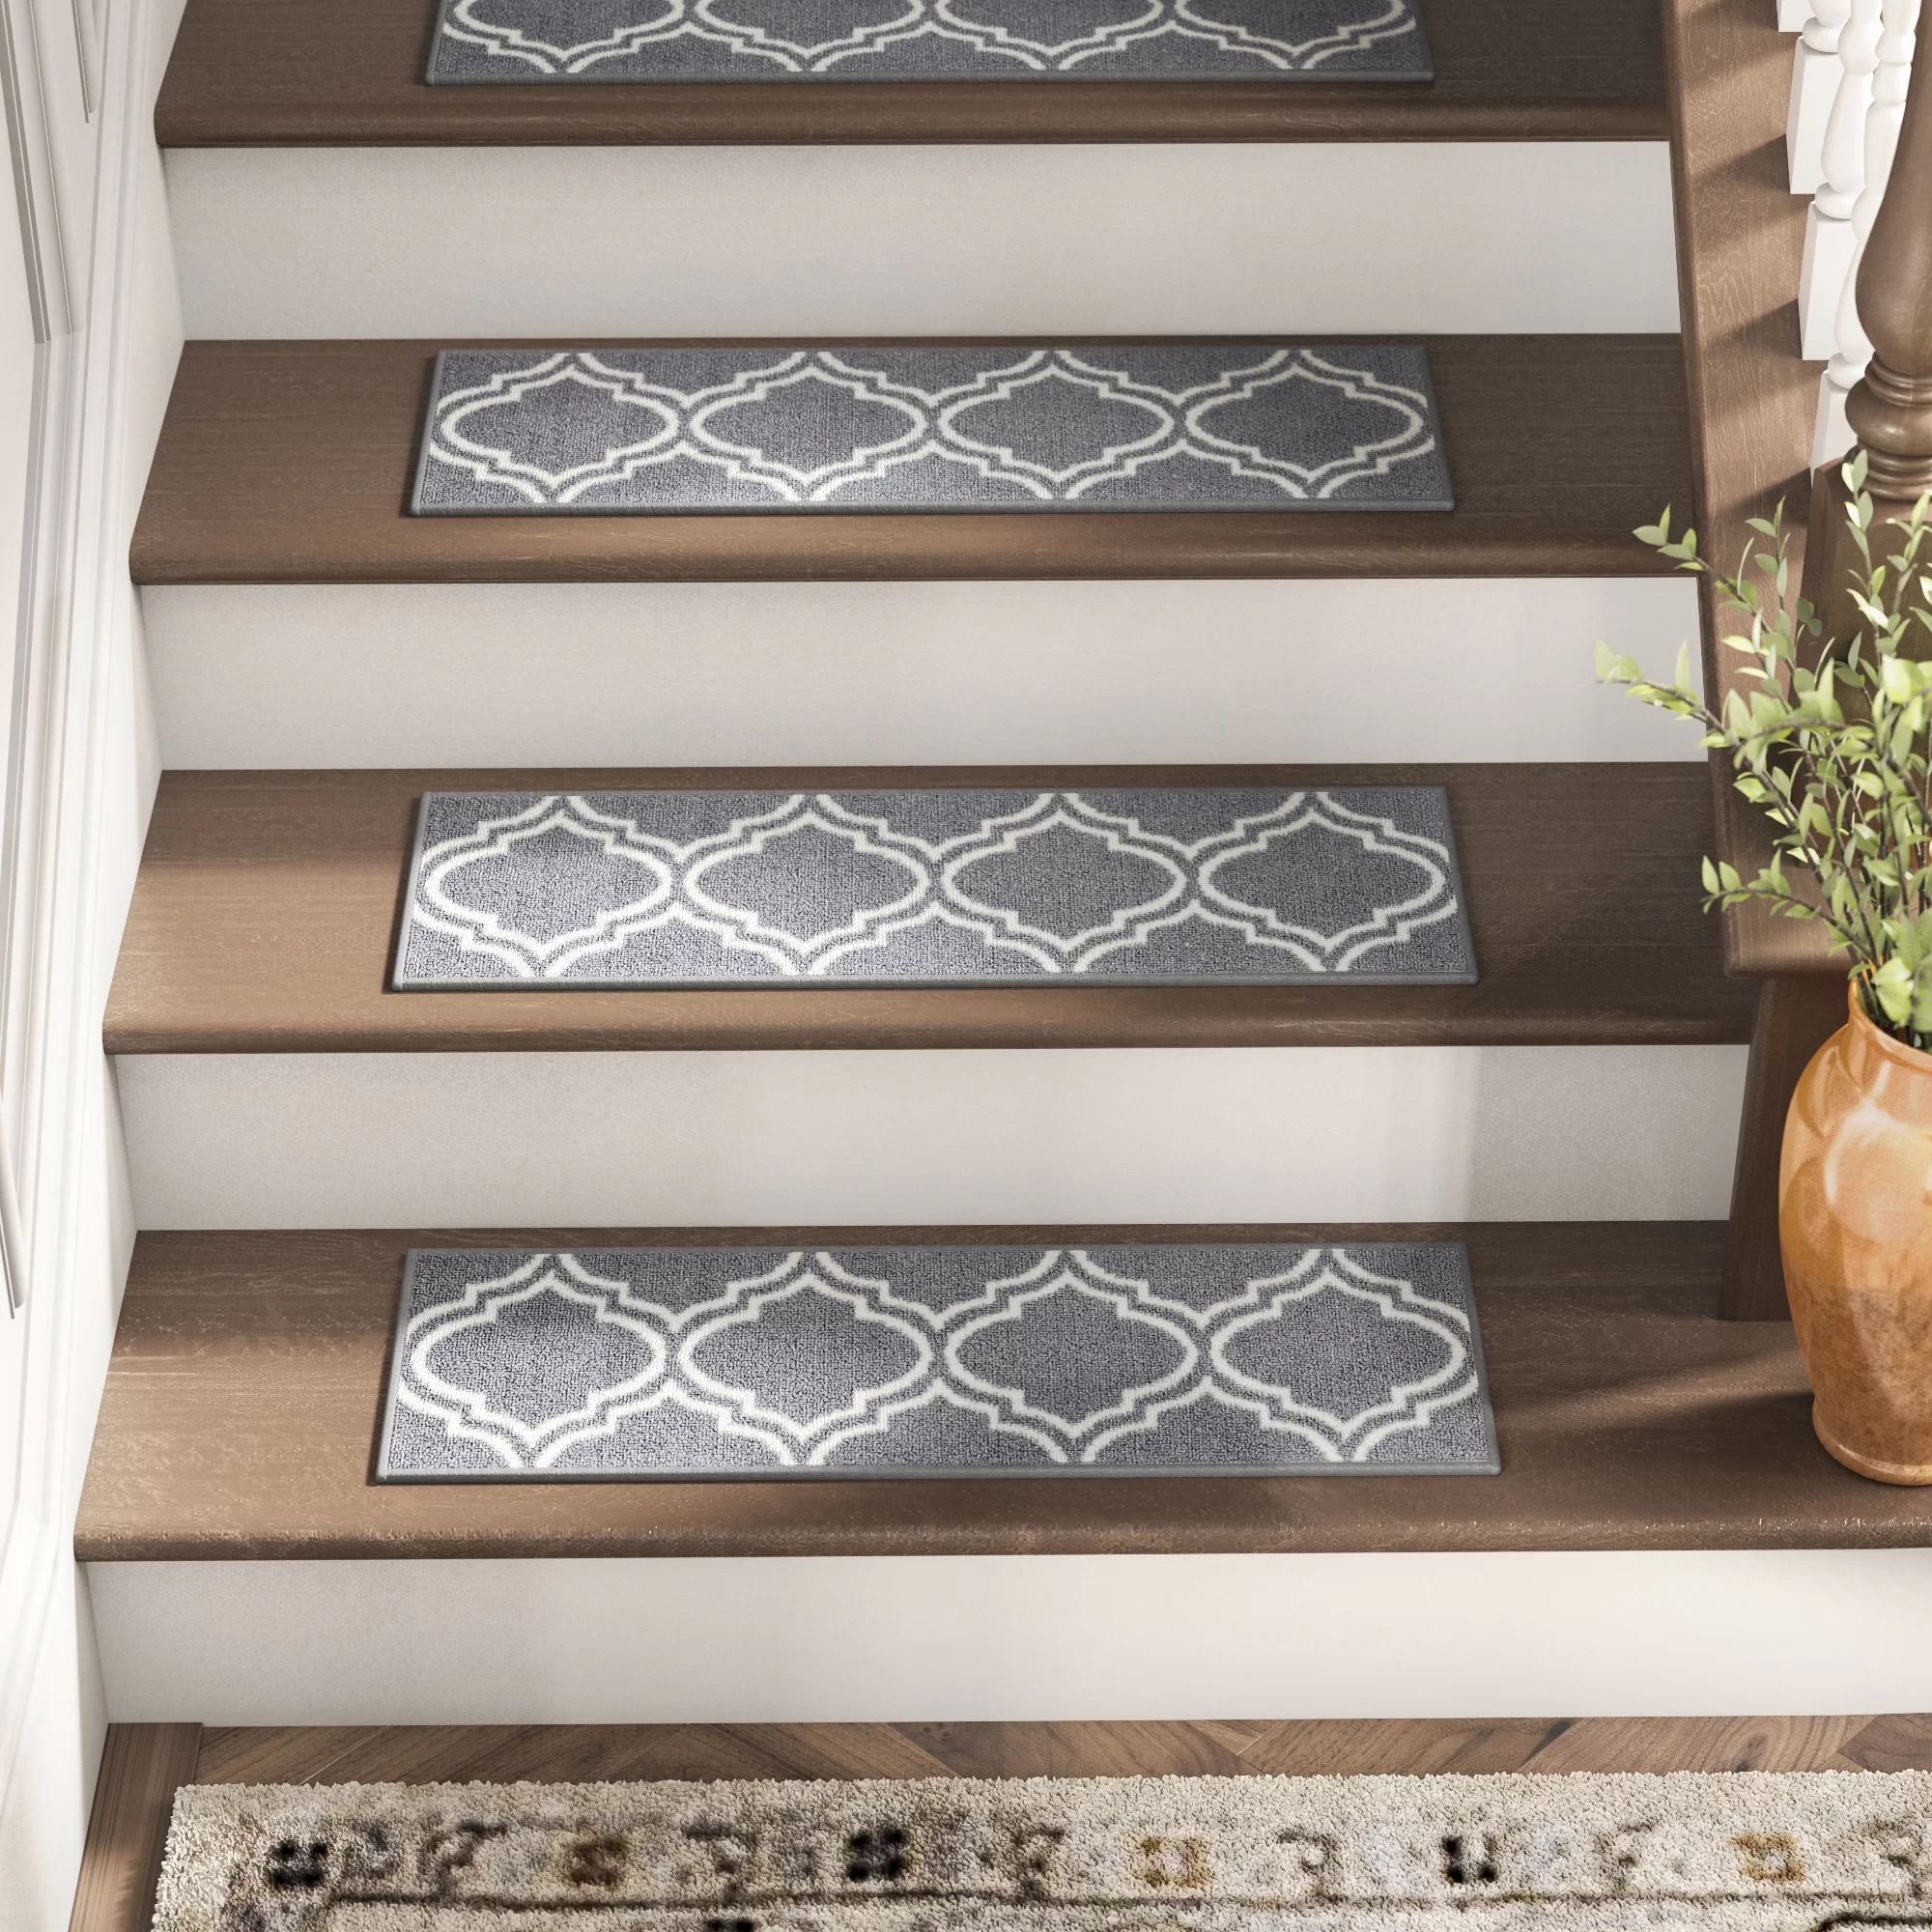 Stair Tread Rugs You Ll Love In 2020 Wayfair | Small Rugs For Stairs | Area Rug | Stair Tread | Wood | Stair Rods | Stair Case